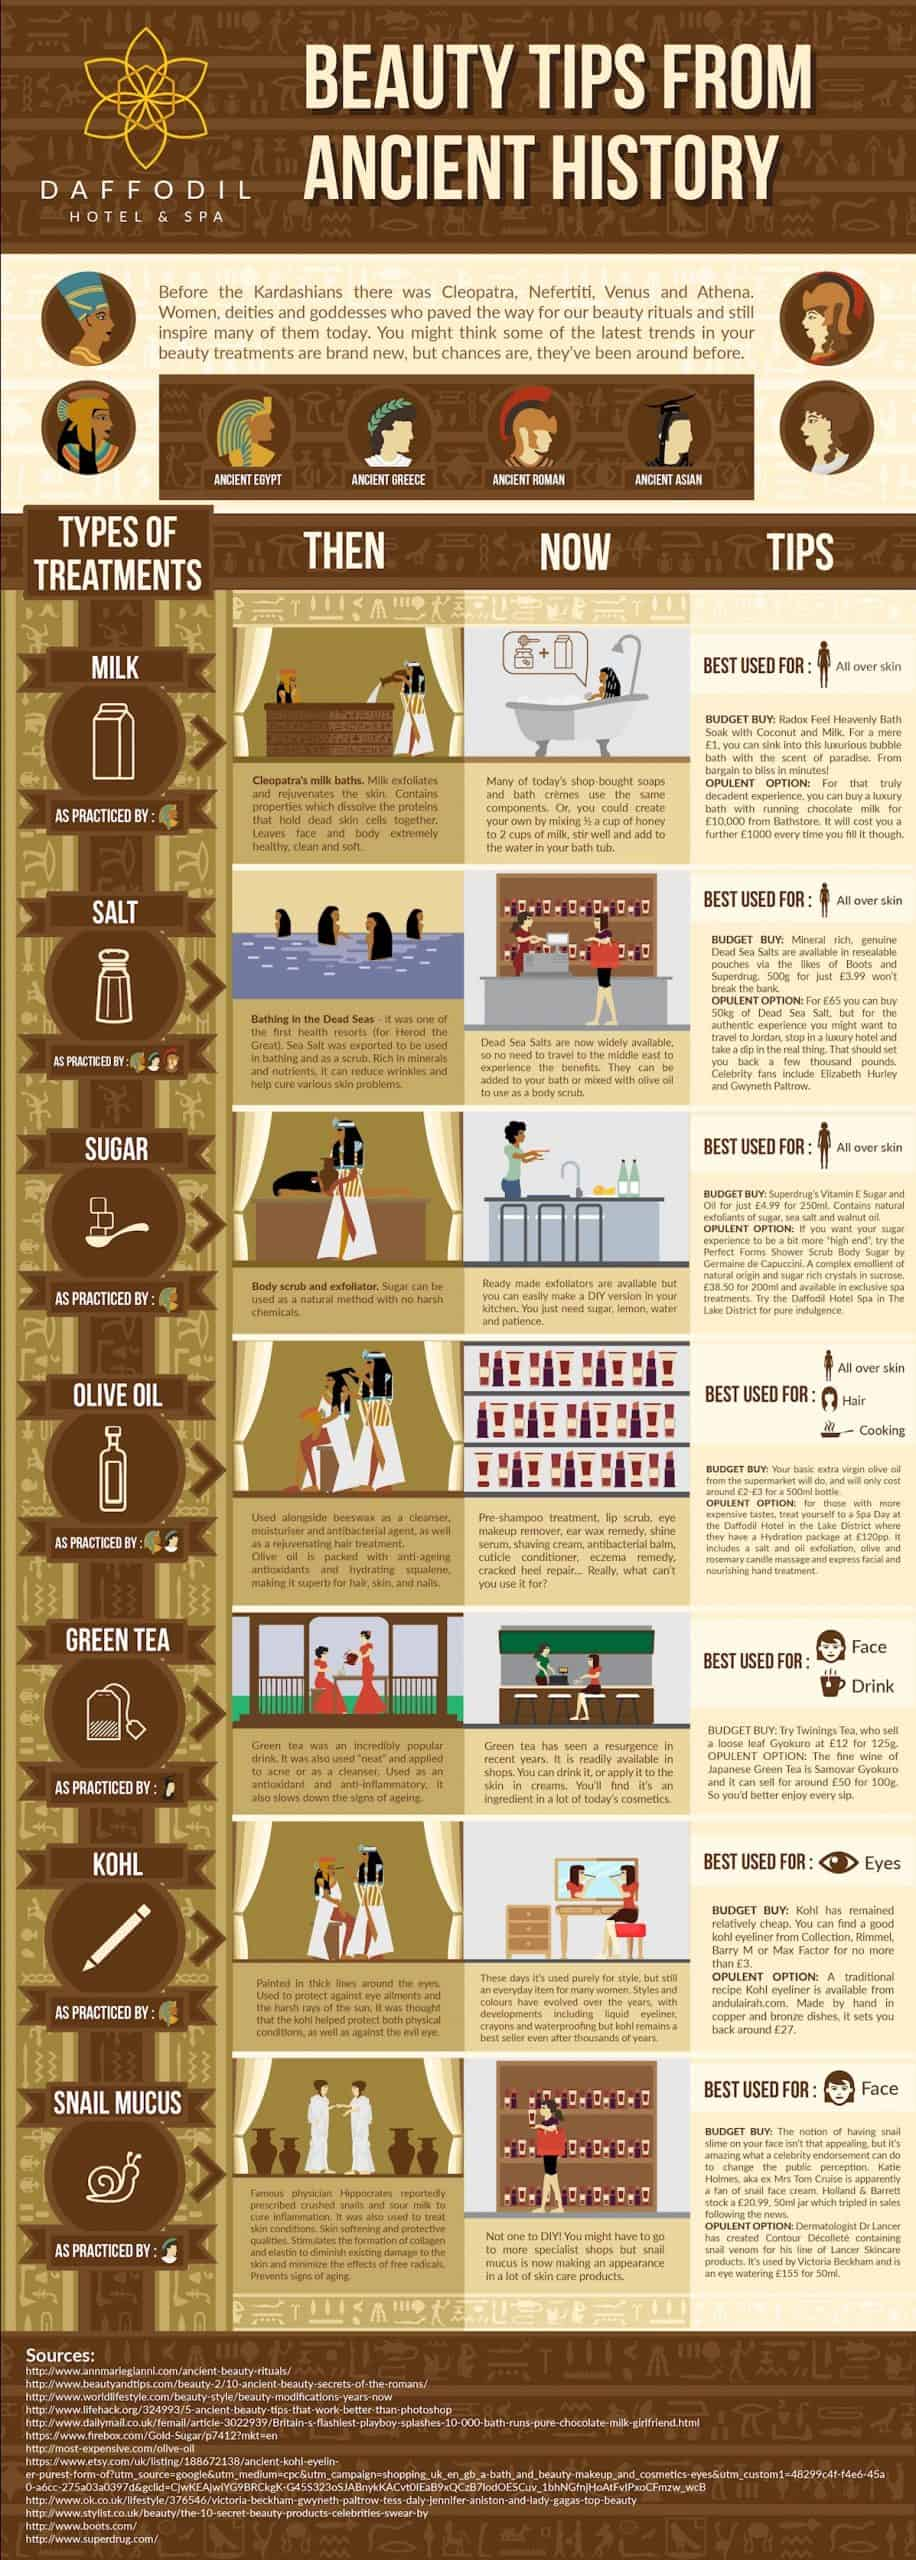 Crazy Beauty Tips From Ancient History  Daily Infographic